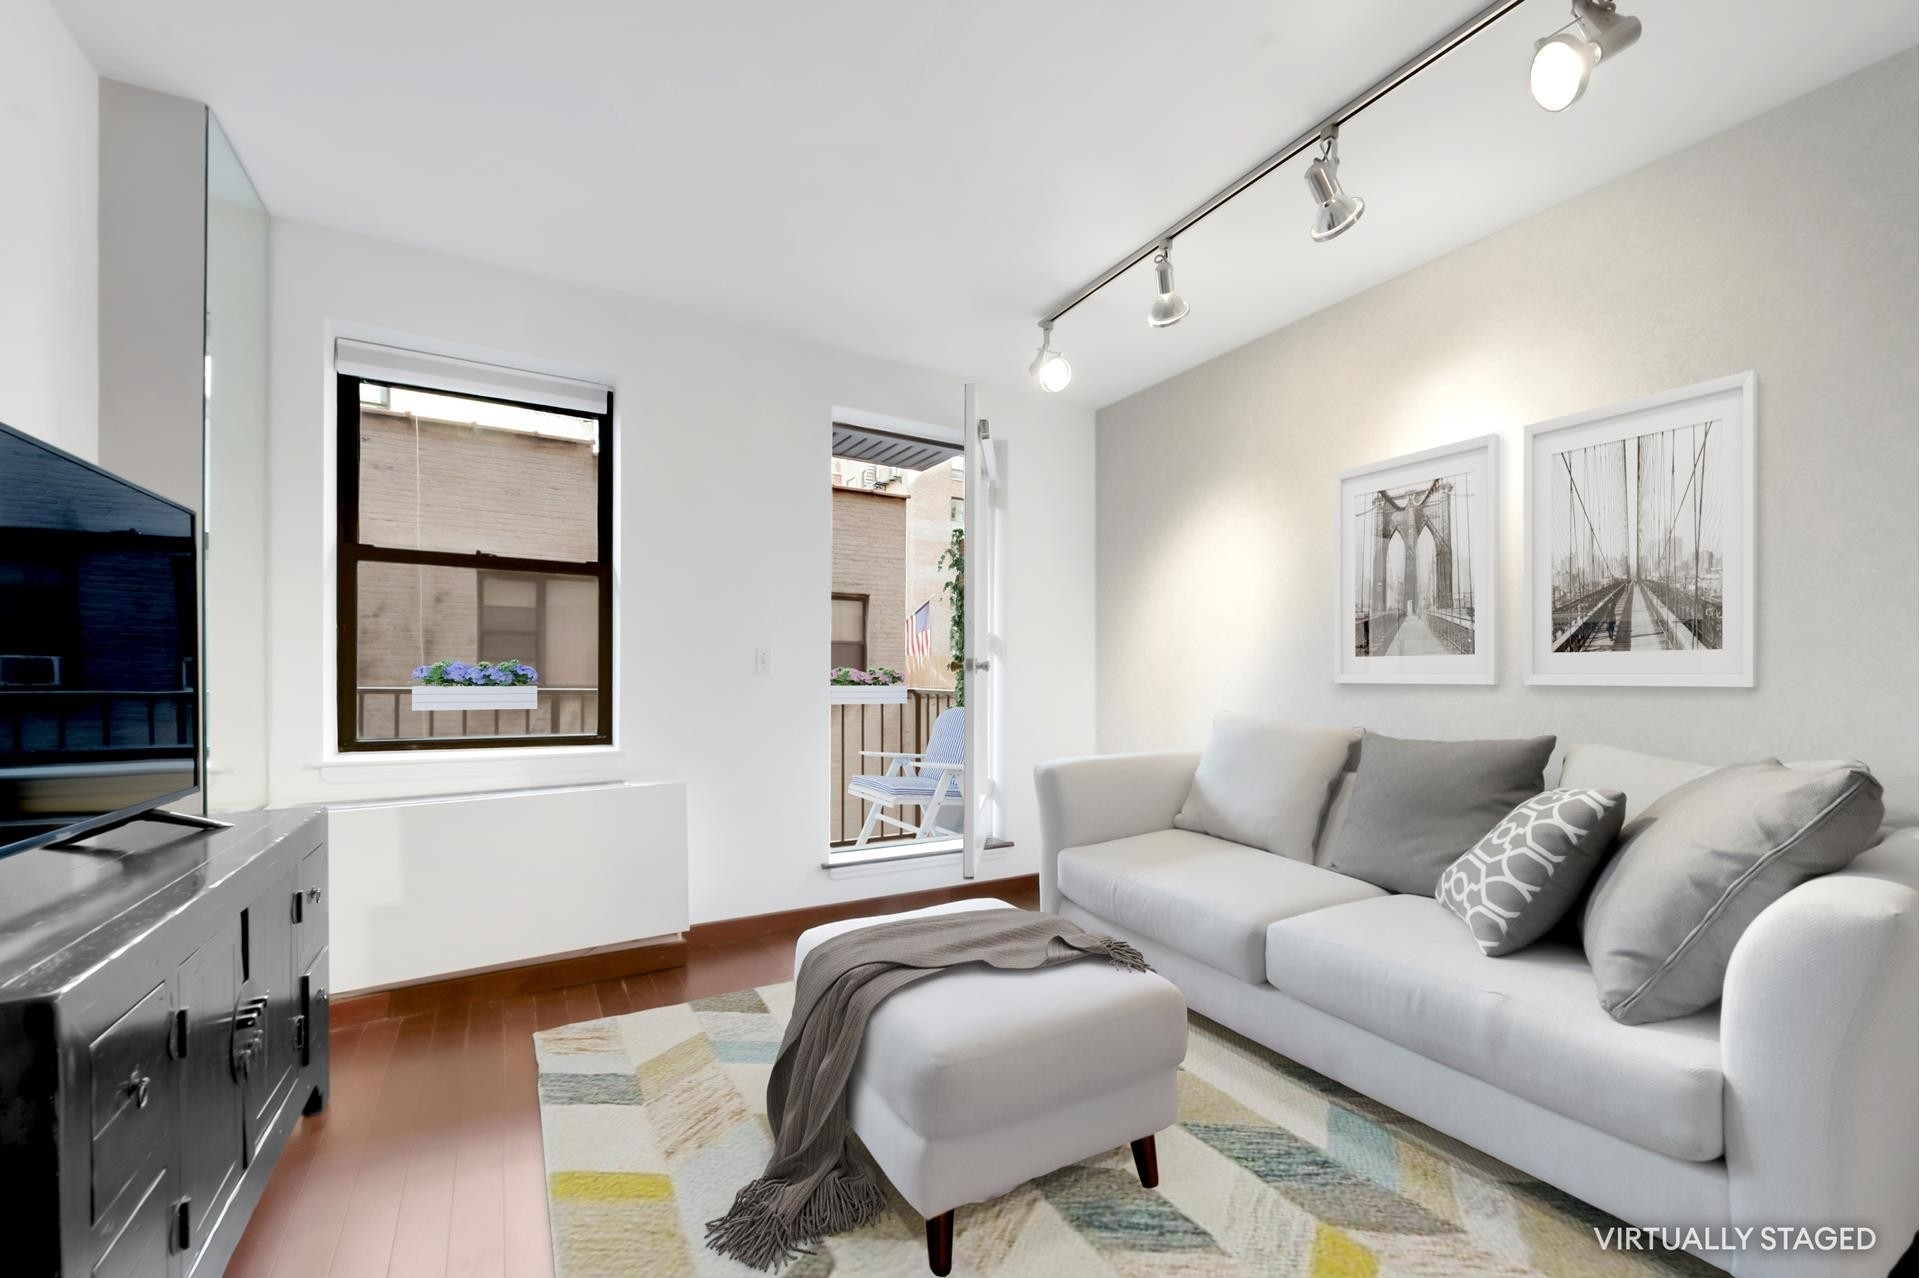 Property en 186 West 80th St, 6M Upper West Side, New York, NY 10024